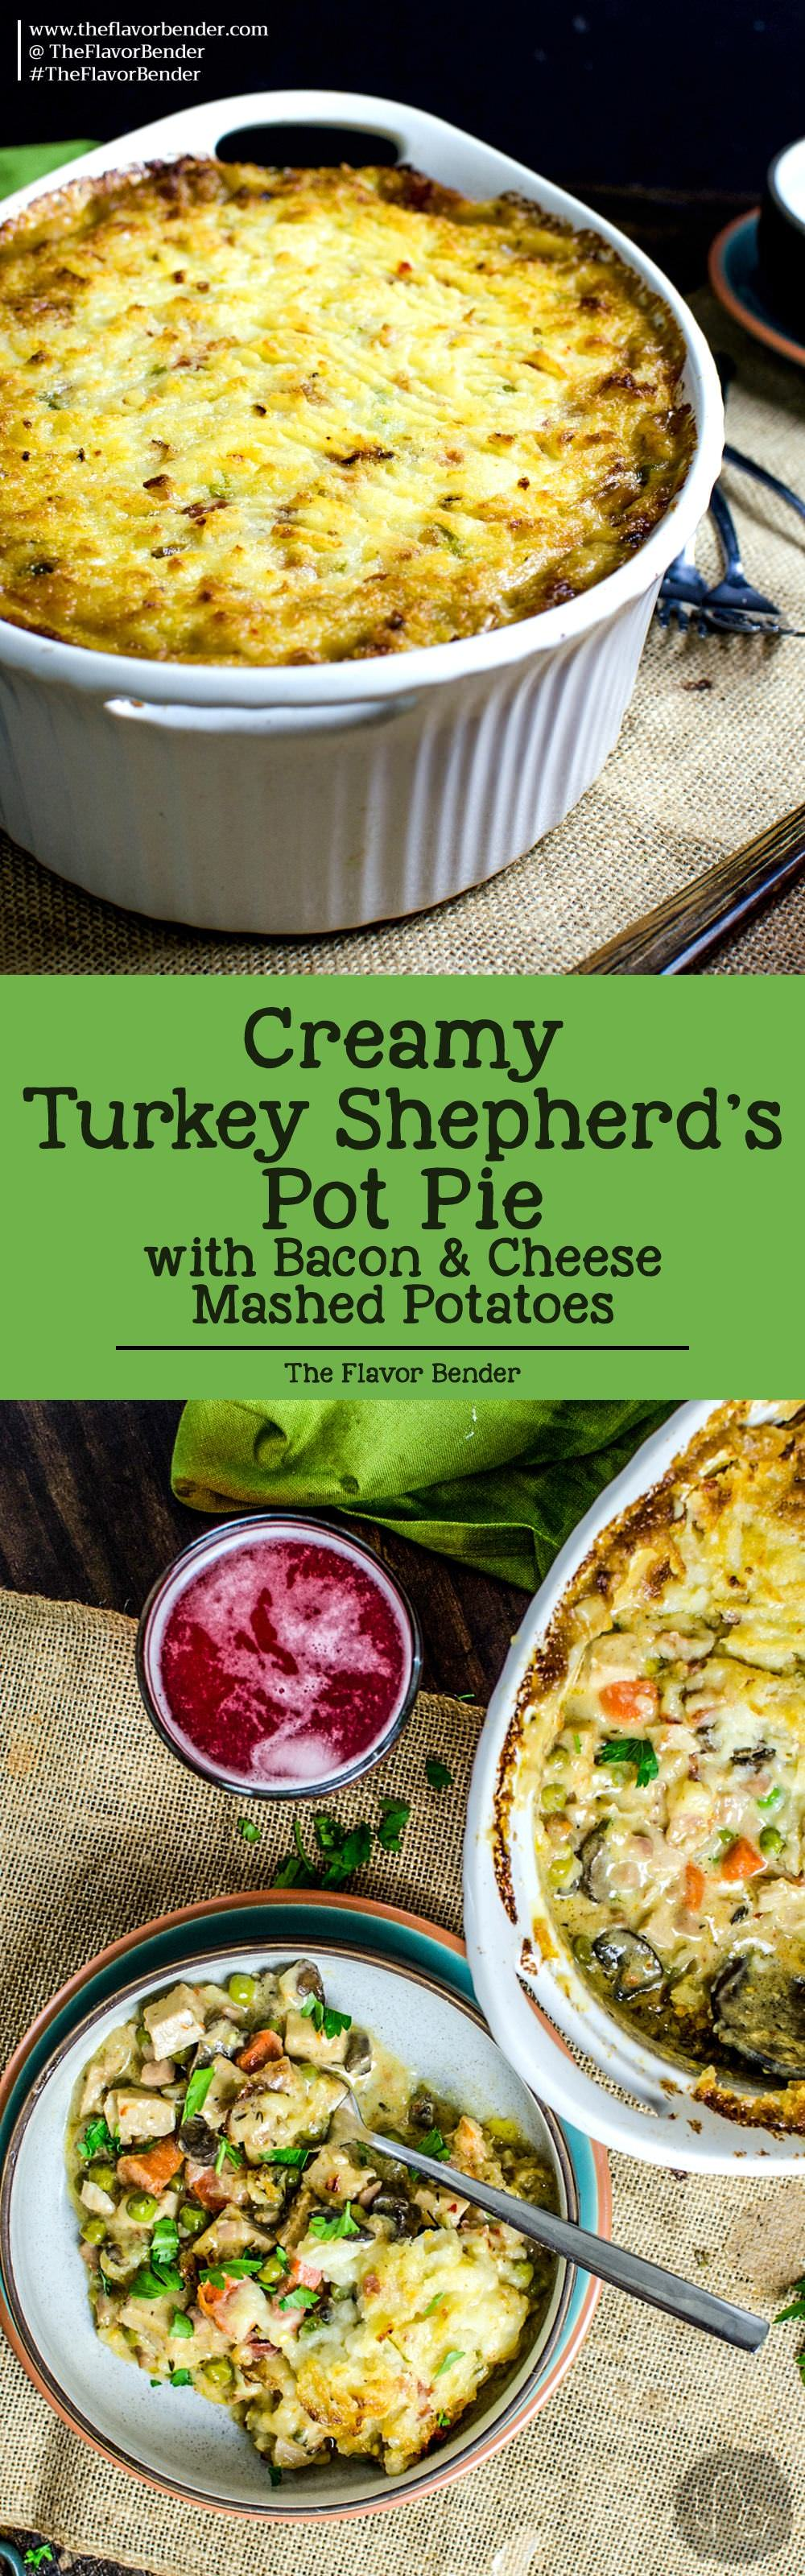 This Creamy Turkey Shepherd's Pot Pie topped with cheese, bacon and creamy mashed potato - giving your Thanksgiving Leftovers a complete makeover! Recipe from theflavorbender.com Thanksgiving | Thanksgiving leftovers | Turkey | Pot Pie | Shepherd's Pie | Mashed Potatoes | Bacon | Ham | Holiday | Friendsgiving |